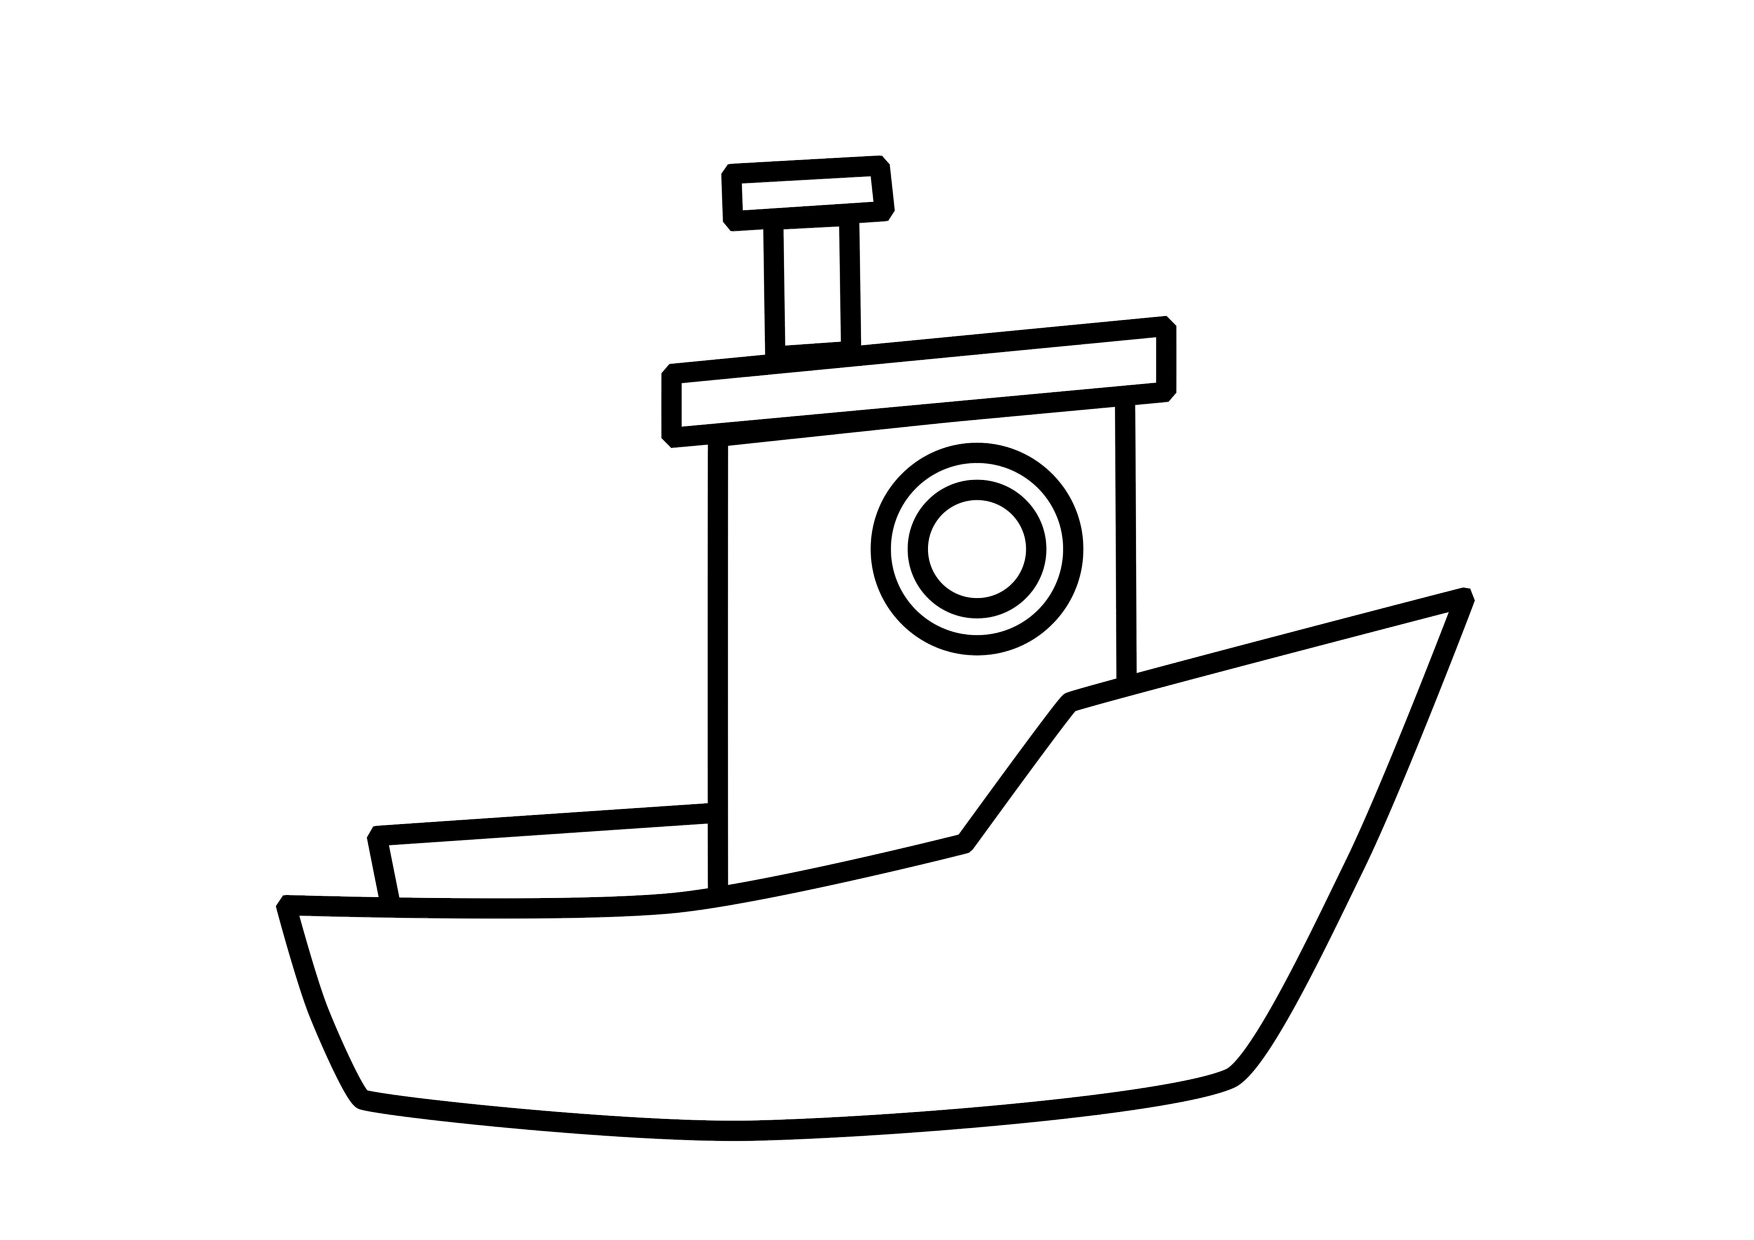 coloring book pages boat - photo#32